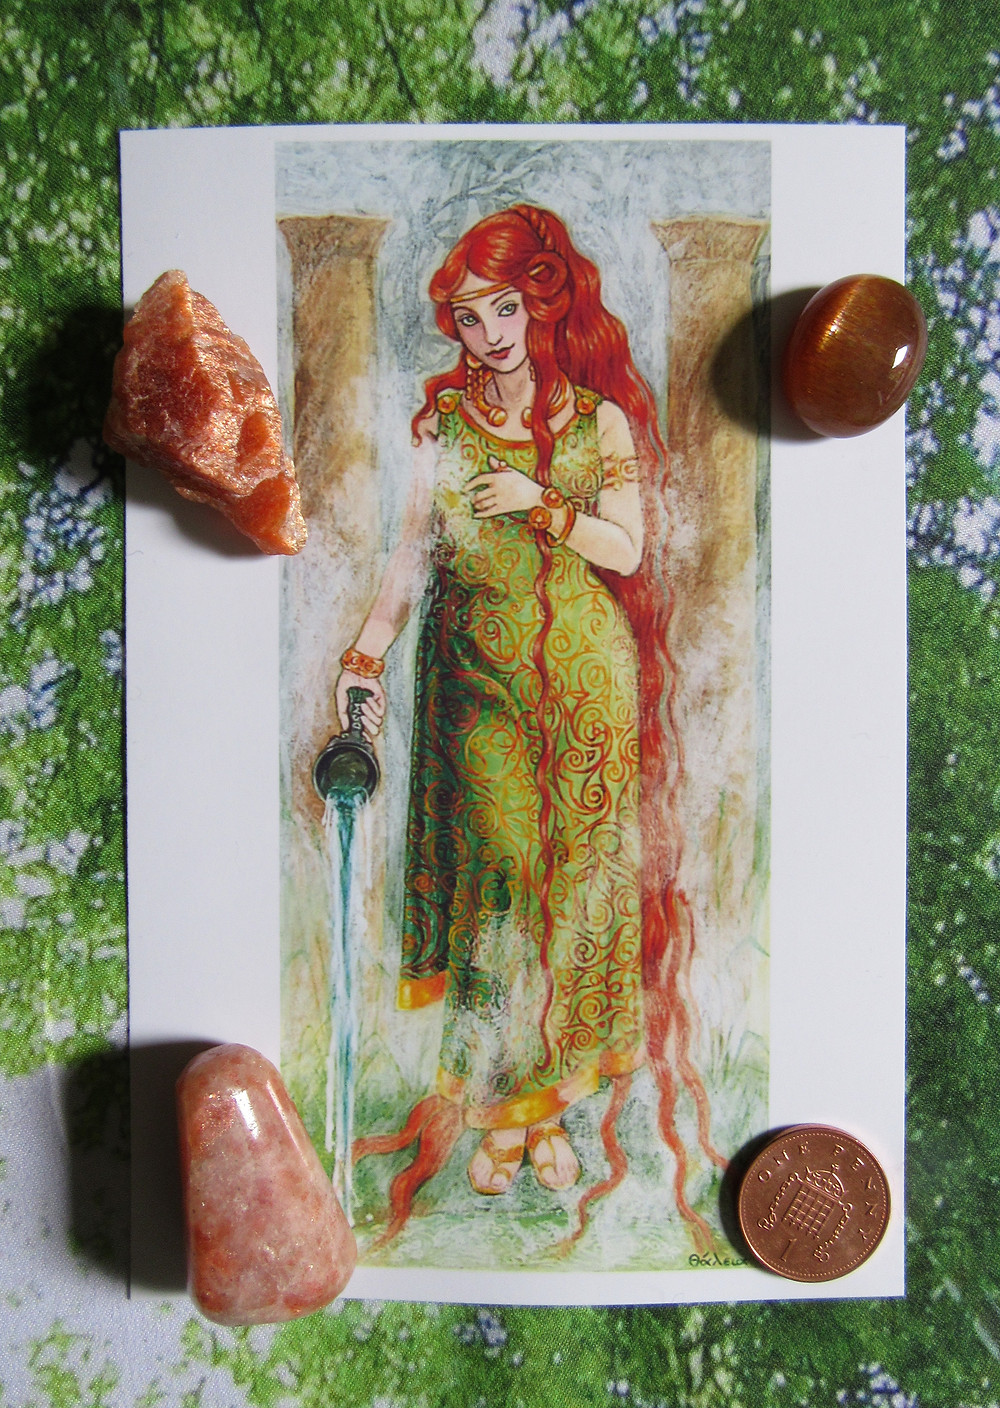 Goddess Sulis with sunstone. Art by Thalia Took.